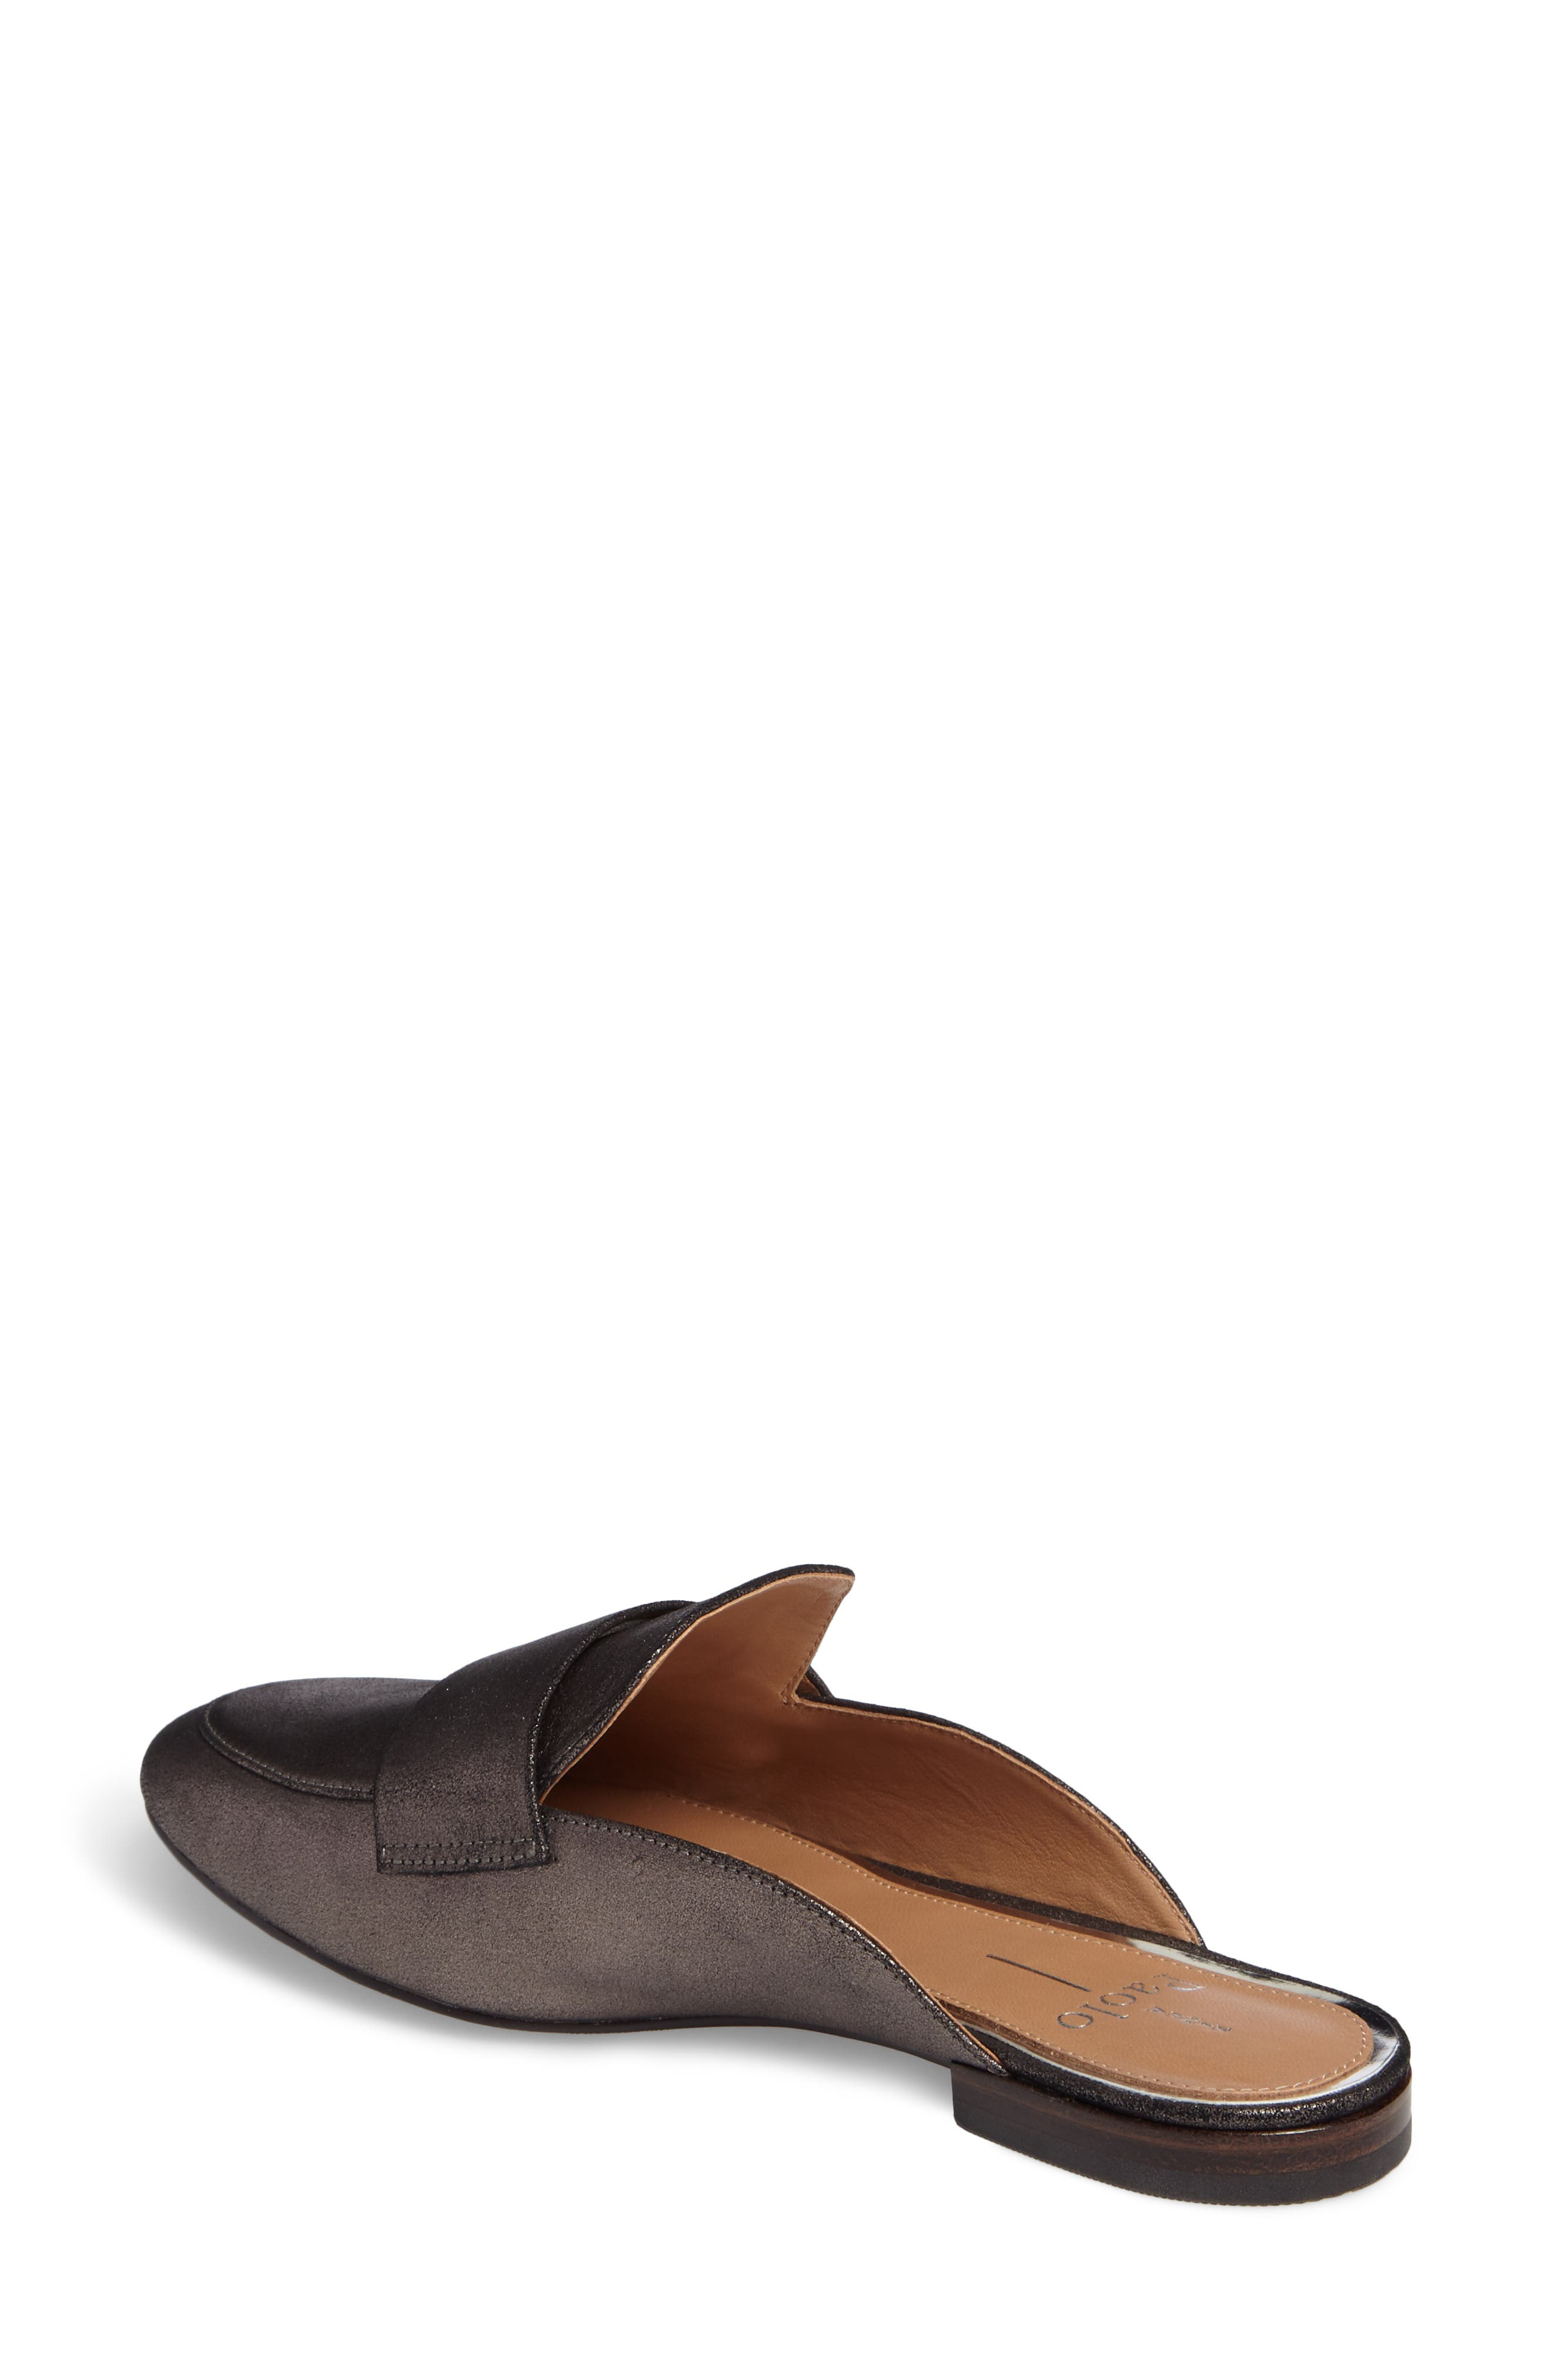 Annie Loafer Mule,                             Alternate thumbnail 2, color,                             PEWTER SUEDE